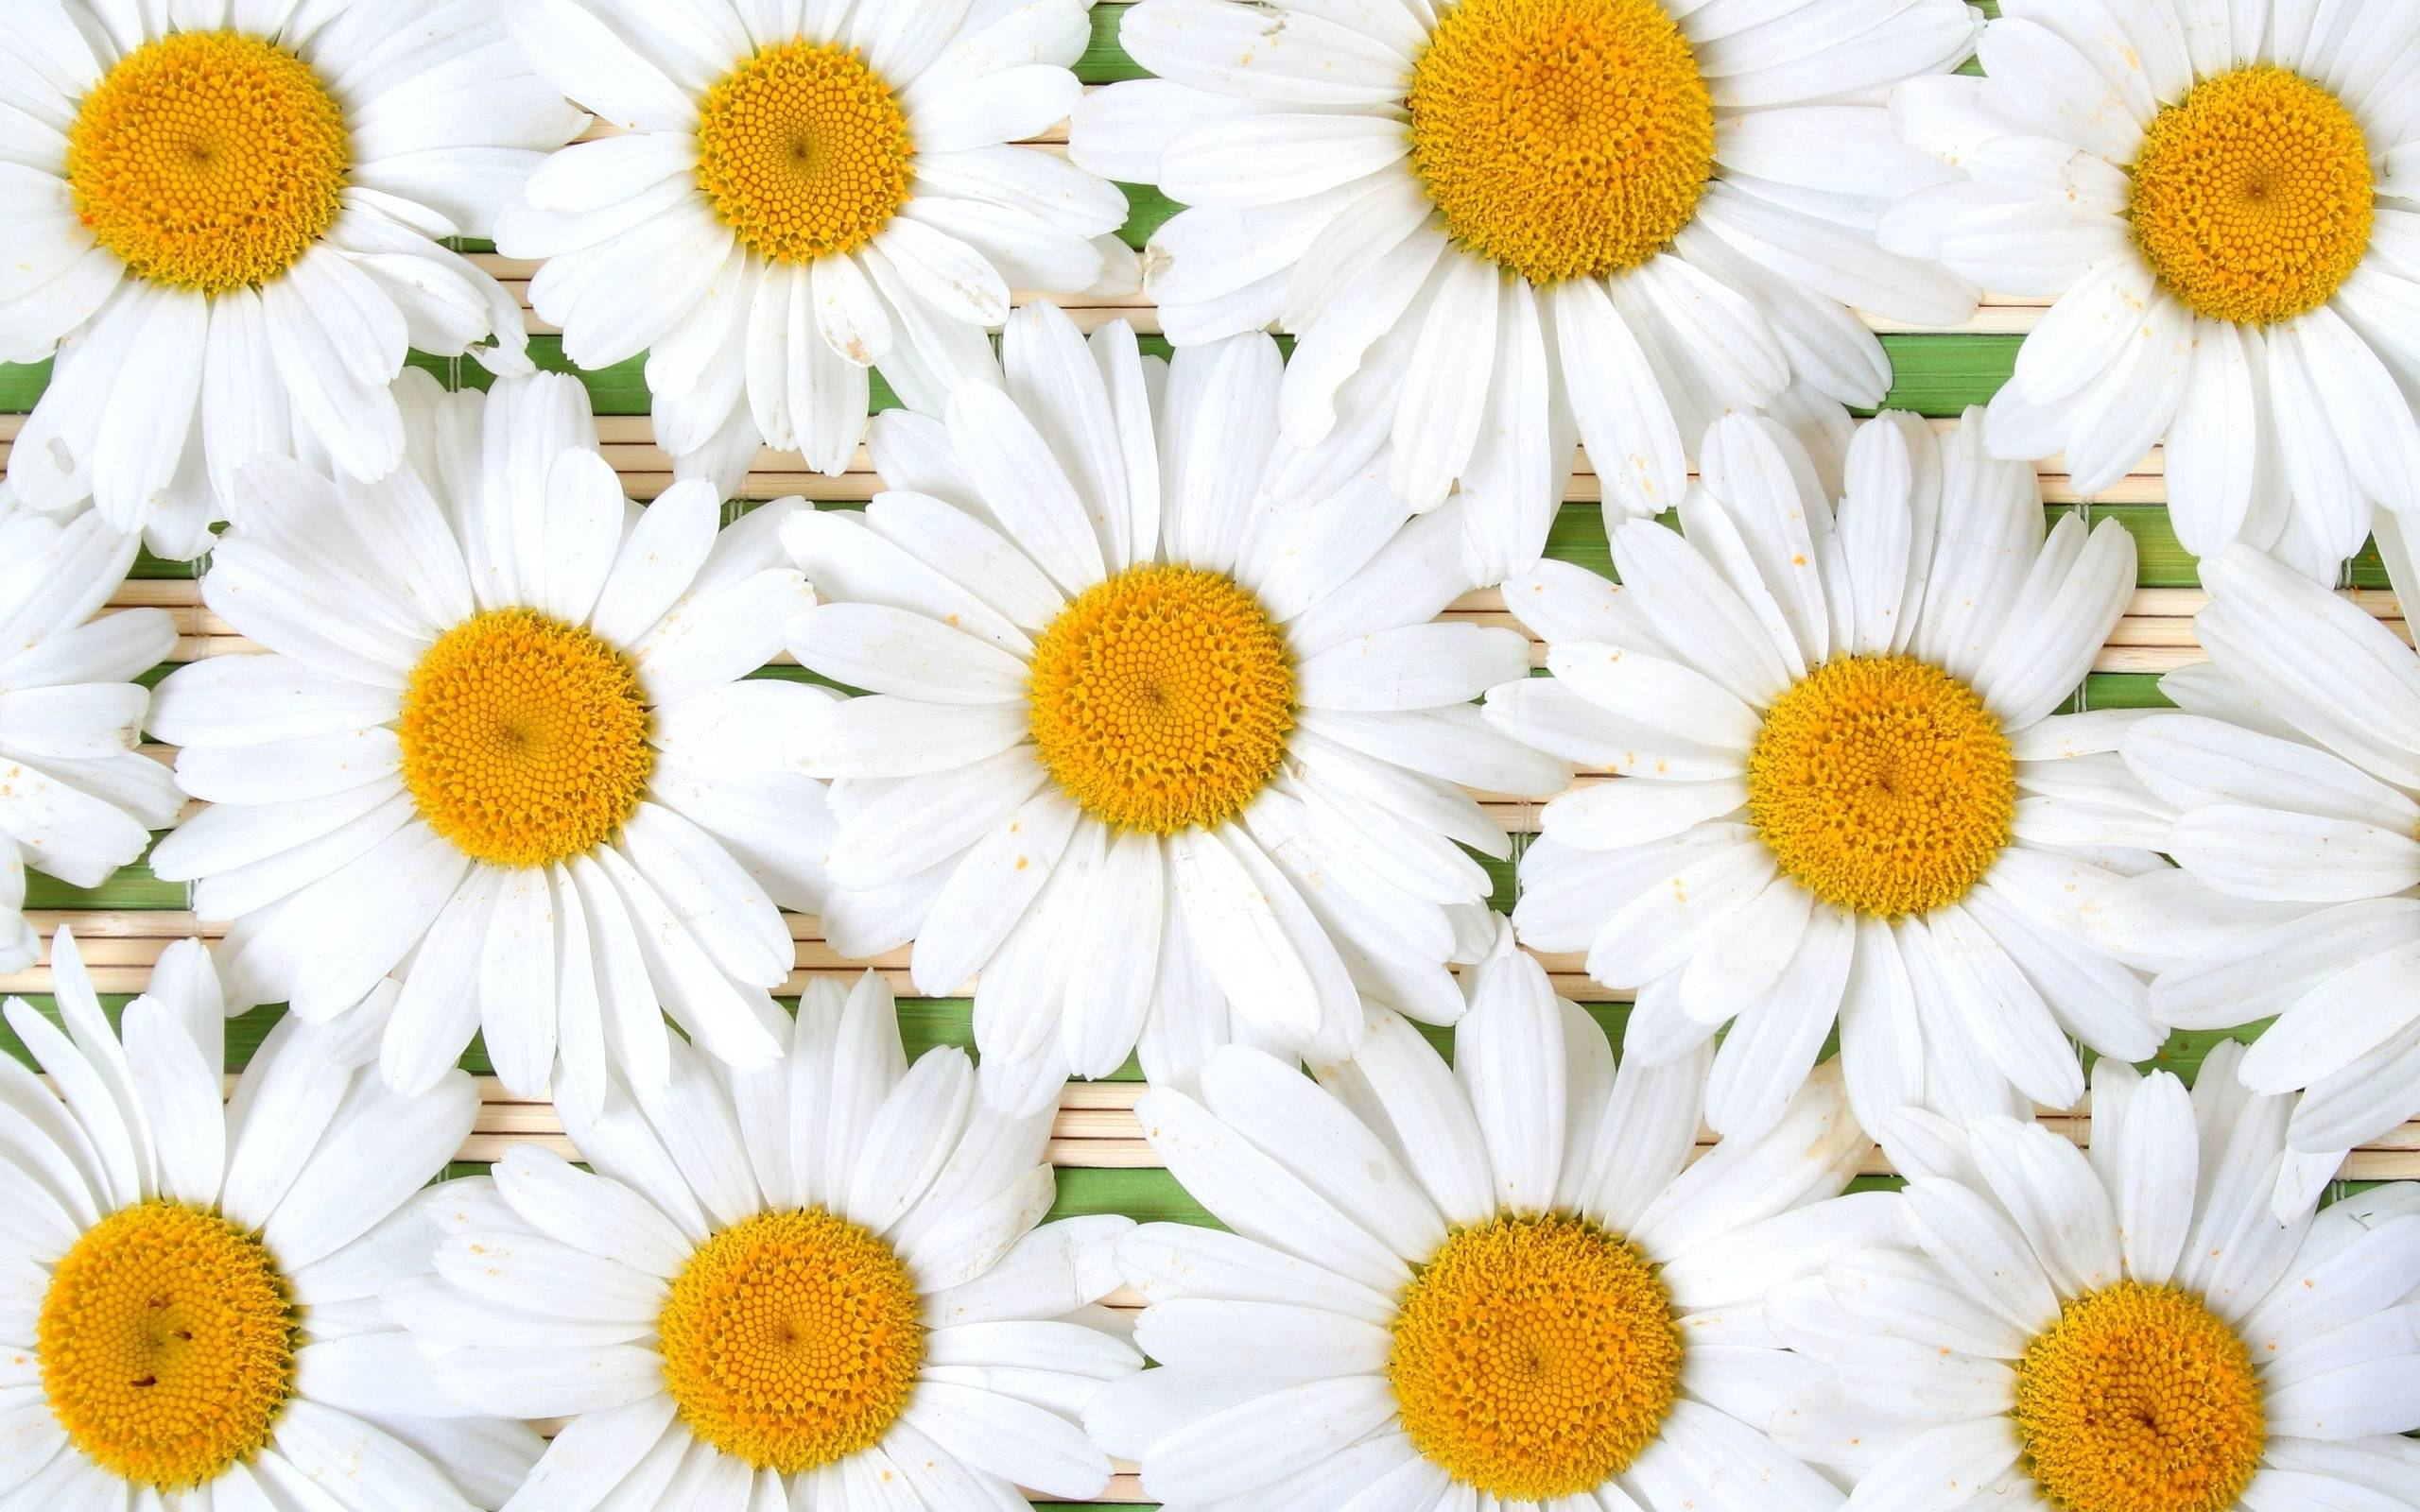 139 Daisy Wallpapers